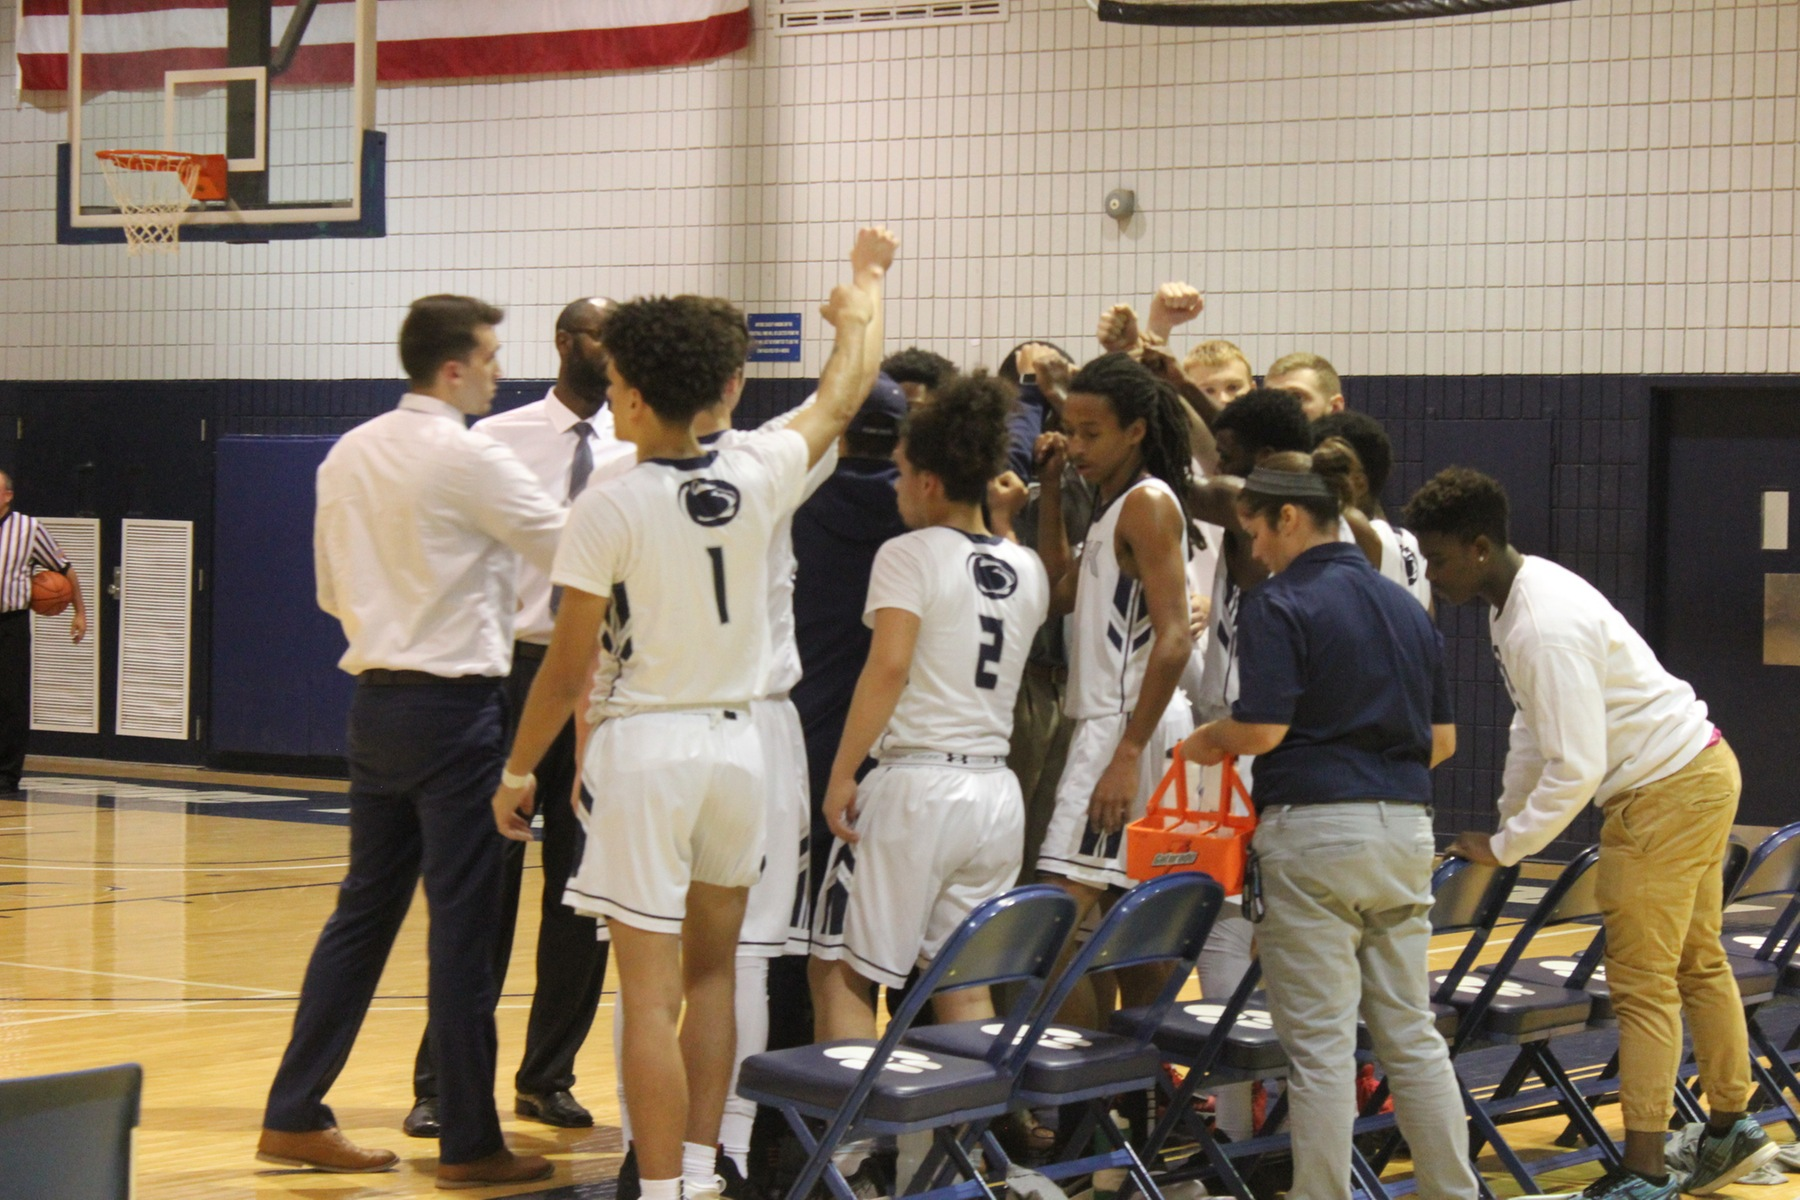 New Kensington Takes Loss in Men's Basketball